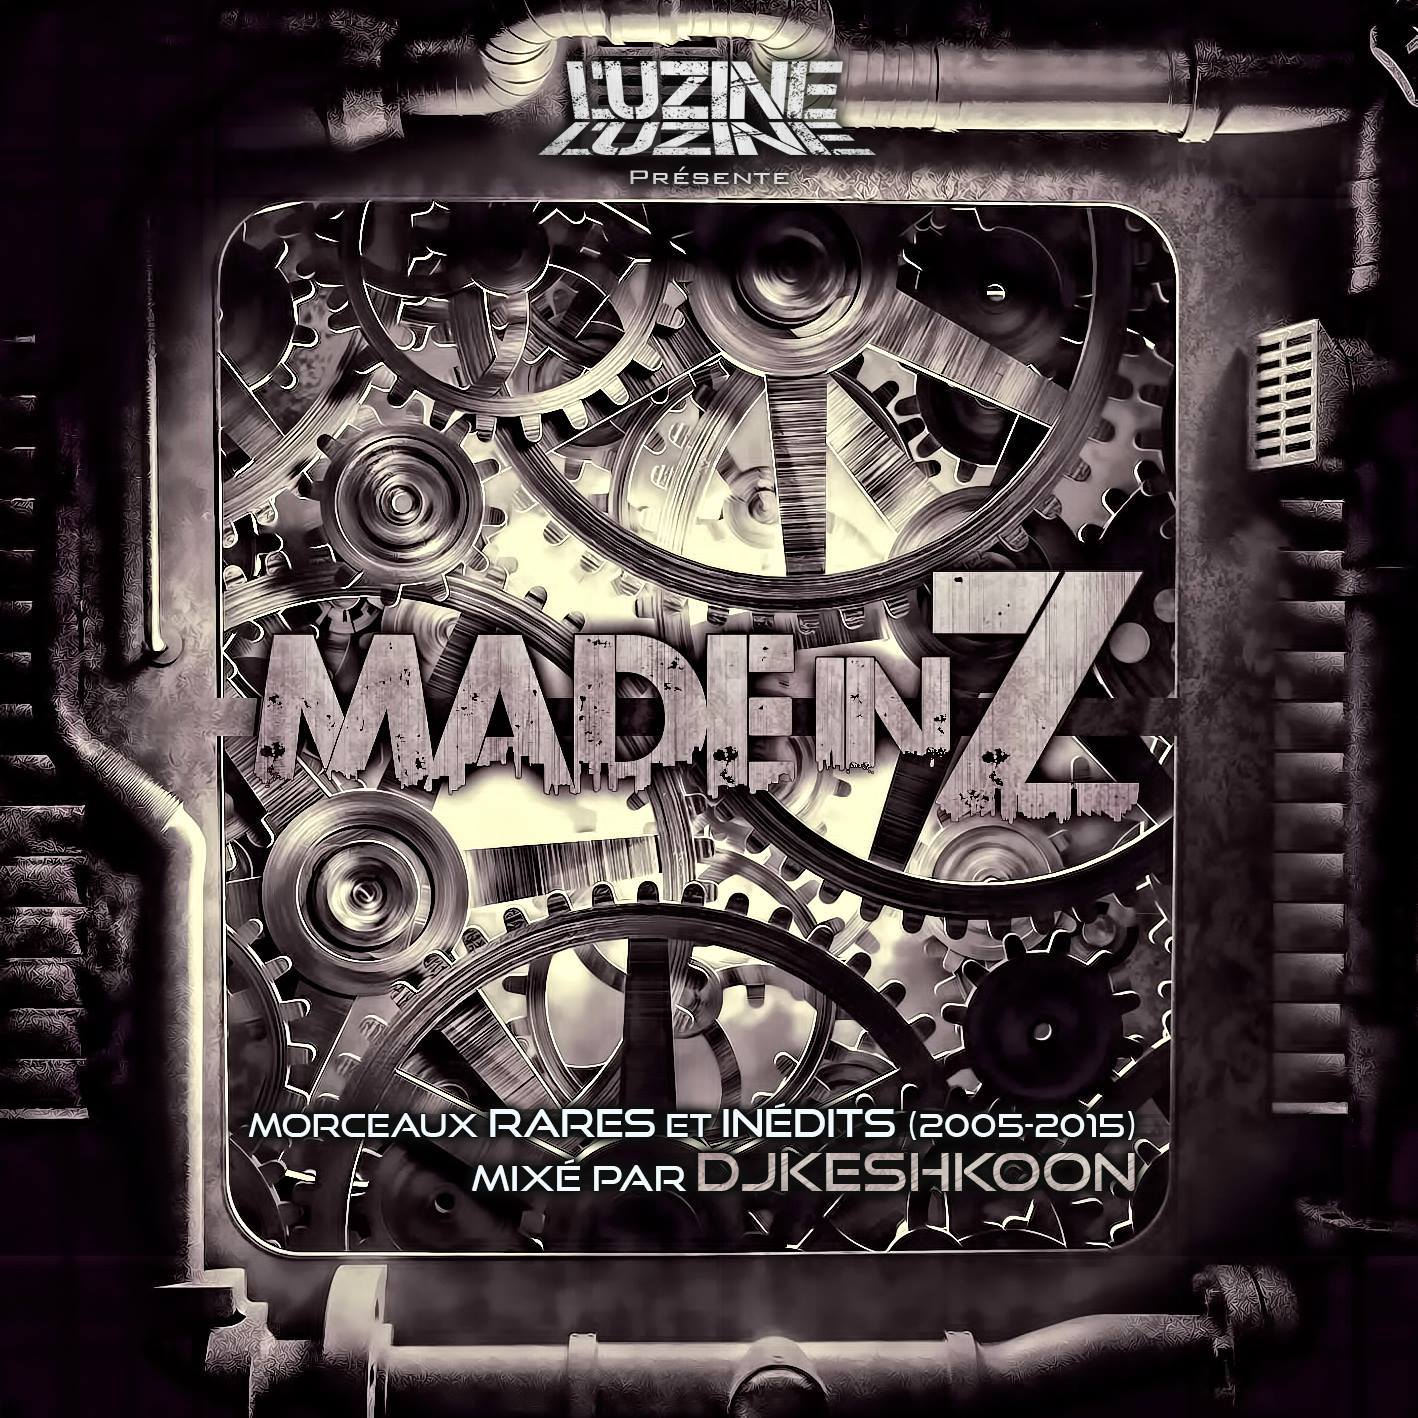 Made In Z (L'uZine + Guests)